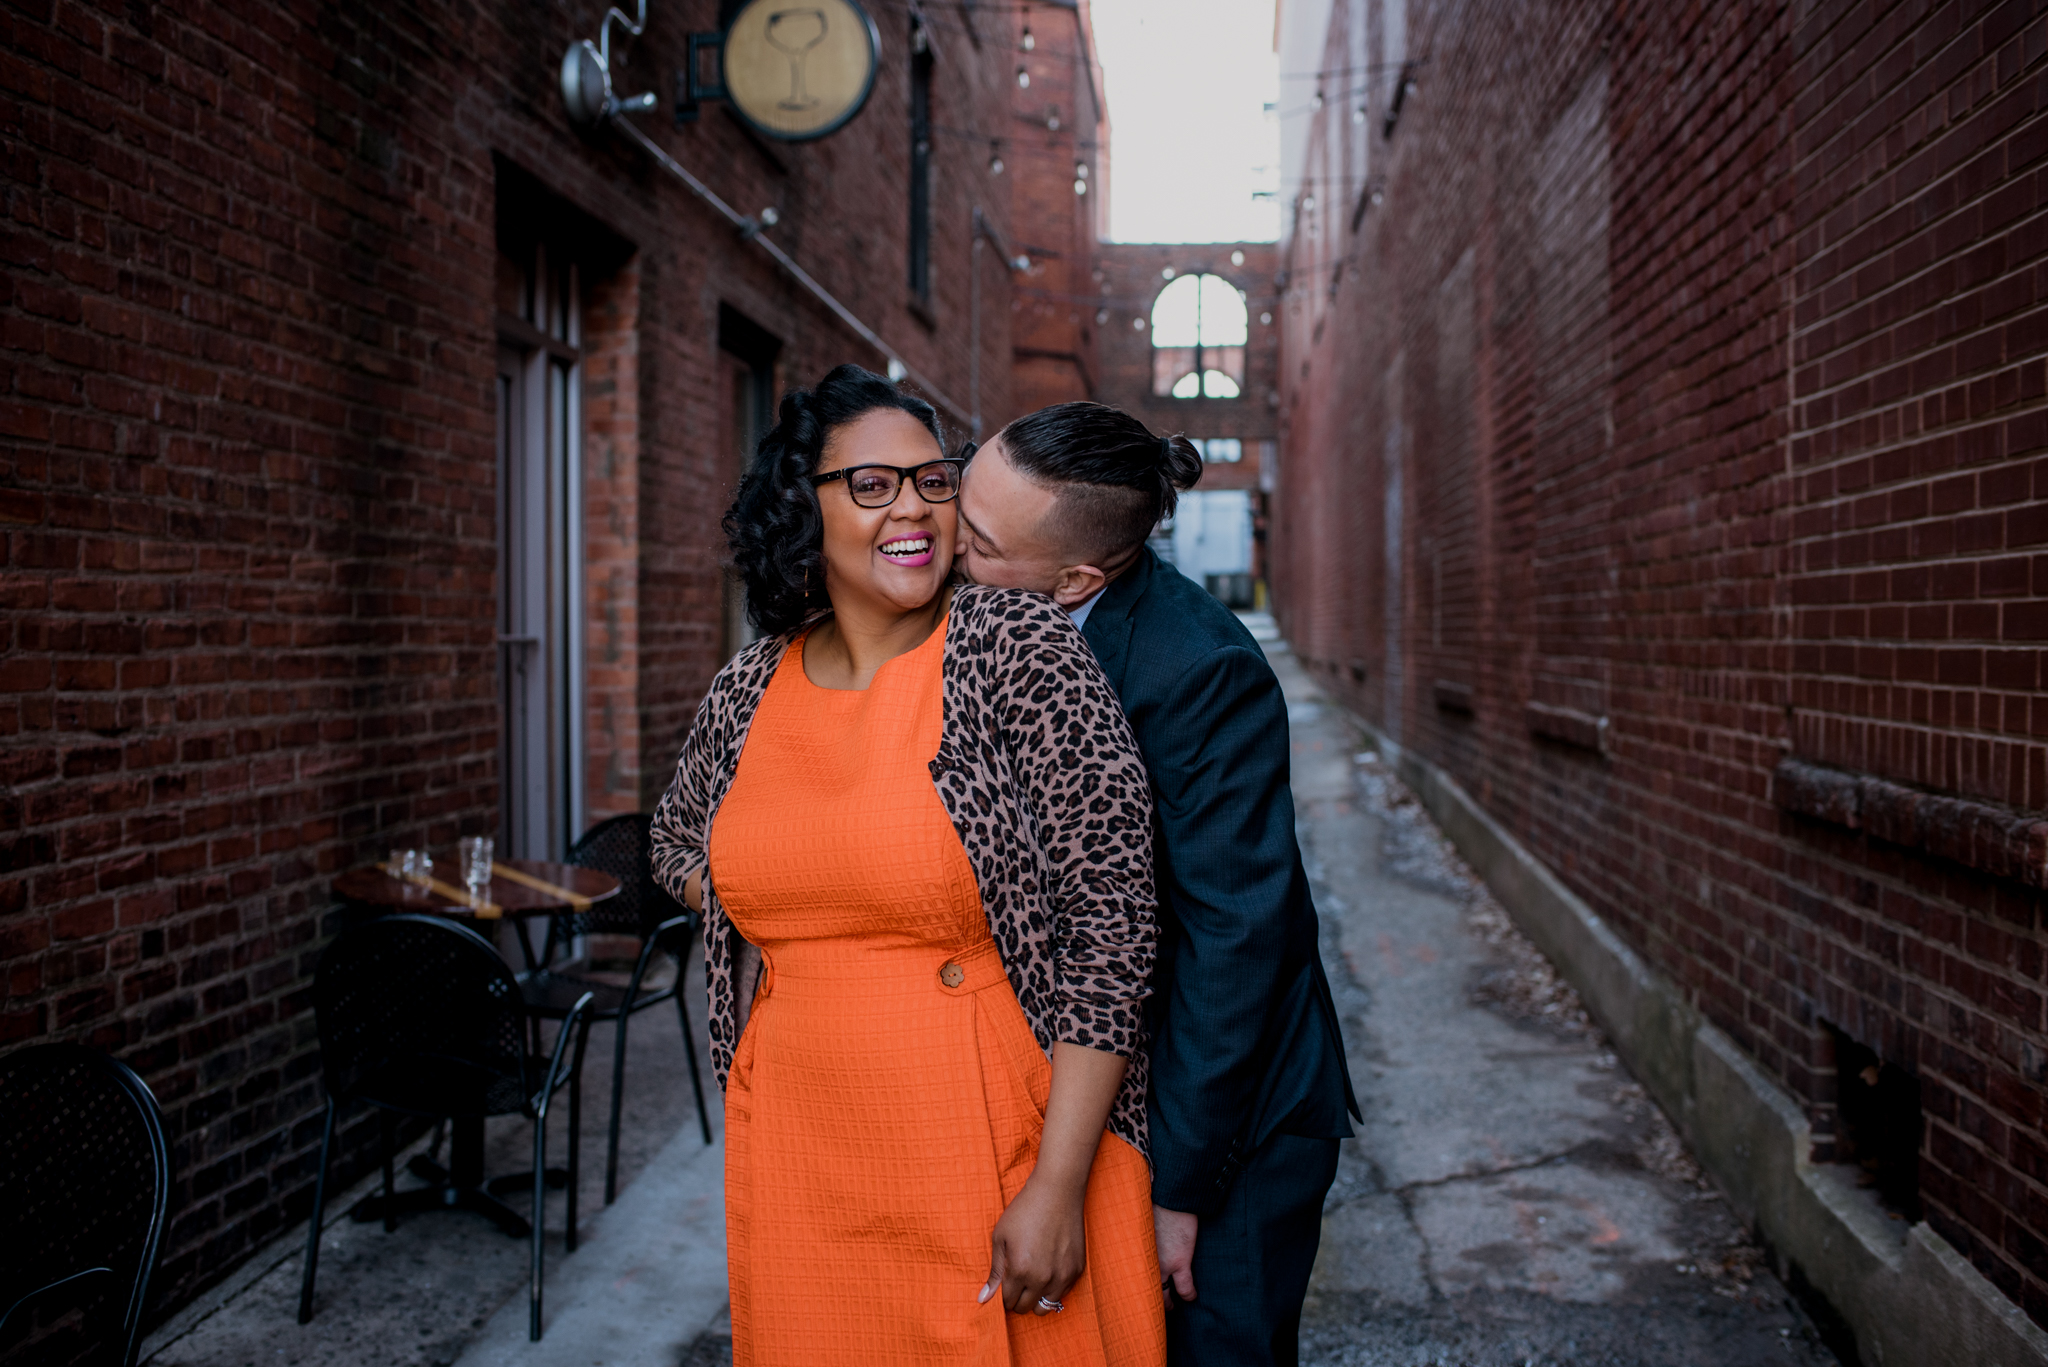 The husband and wife cuddle together in an alley way outside of The Durham Hotel in Durham, North Carolina, image by Rose Trail Images.